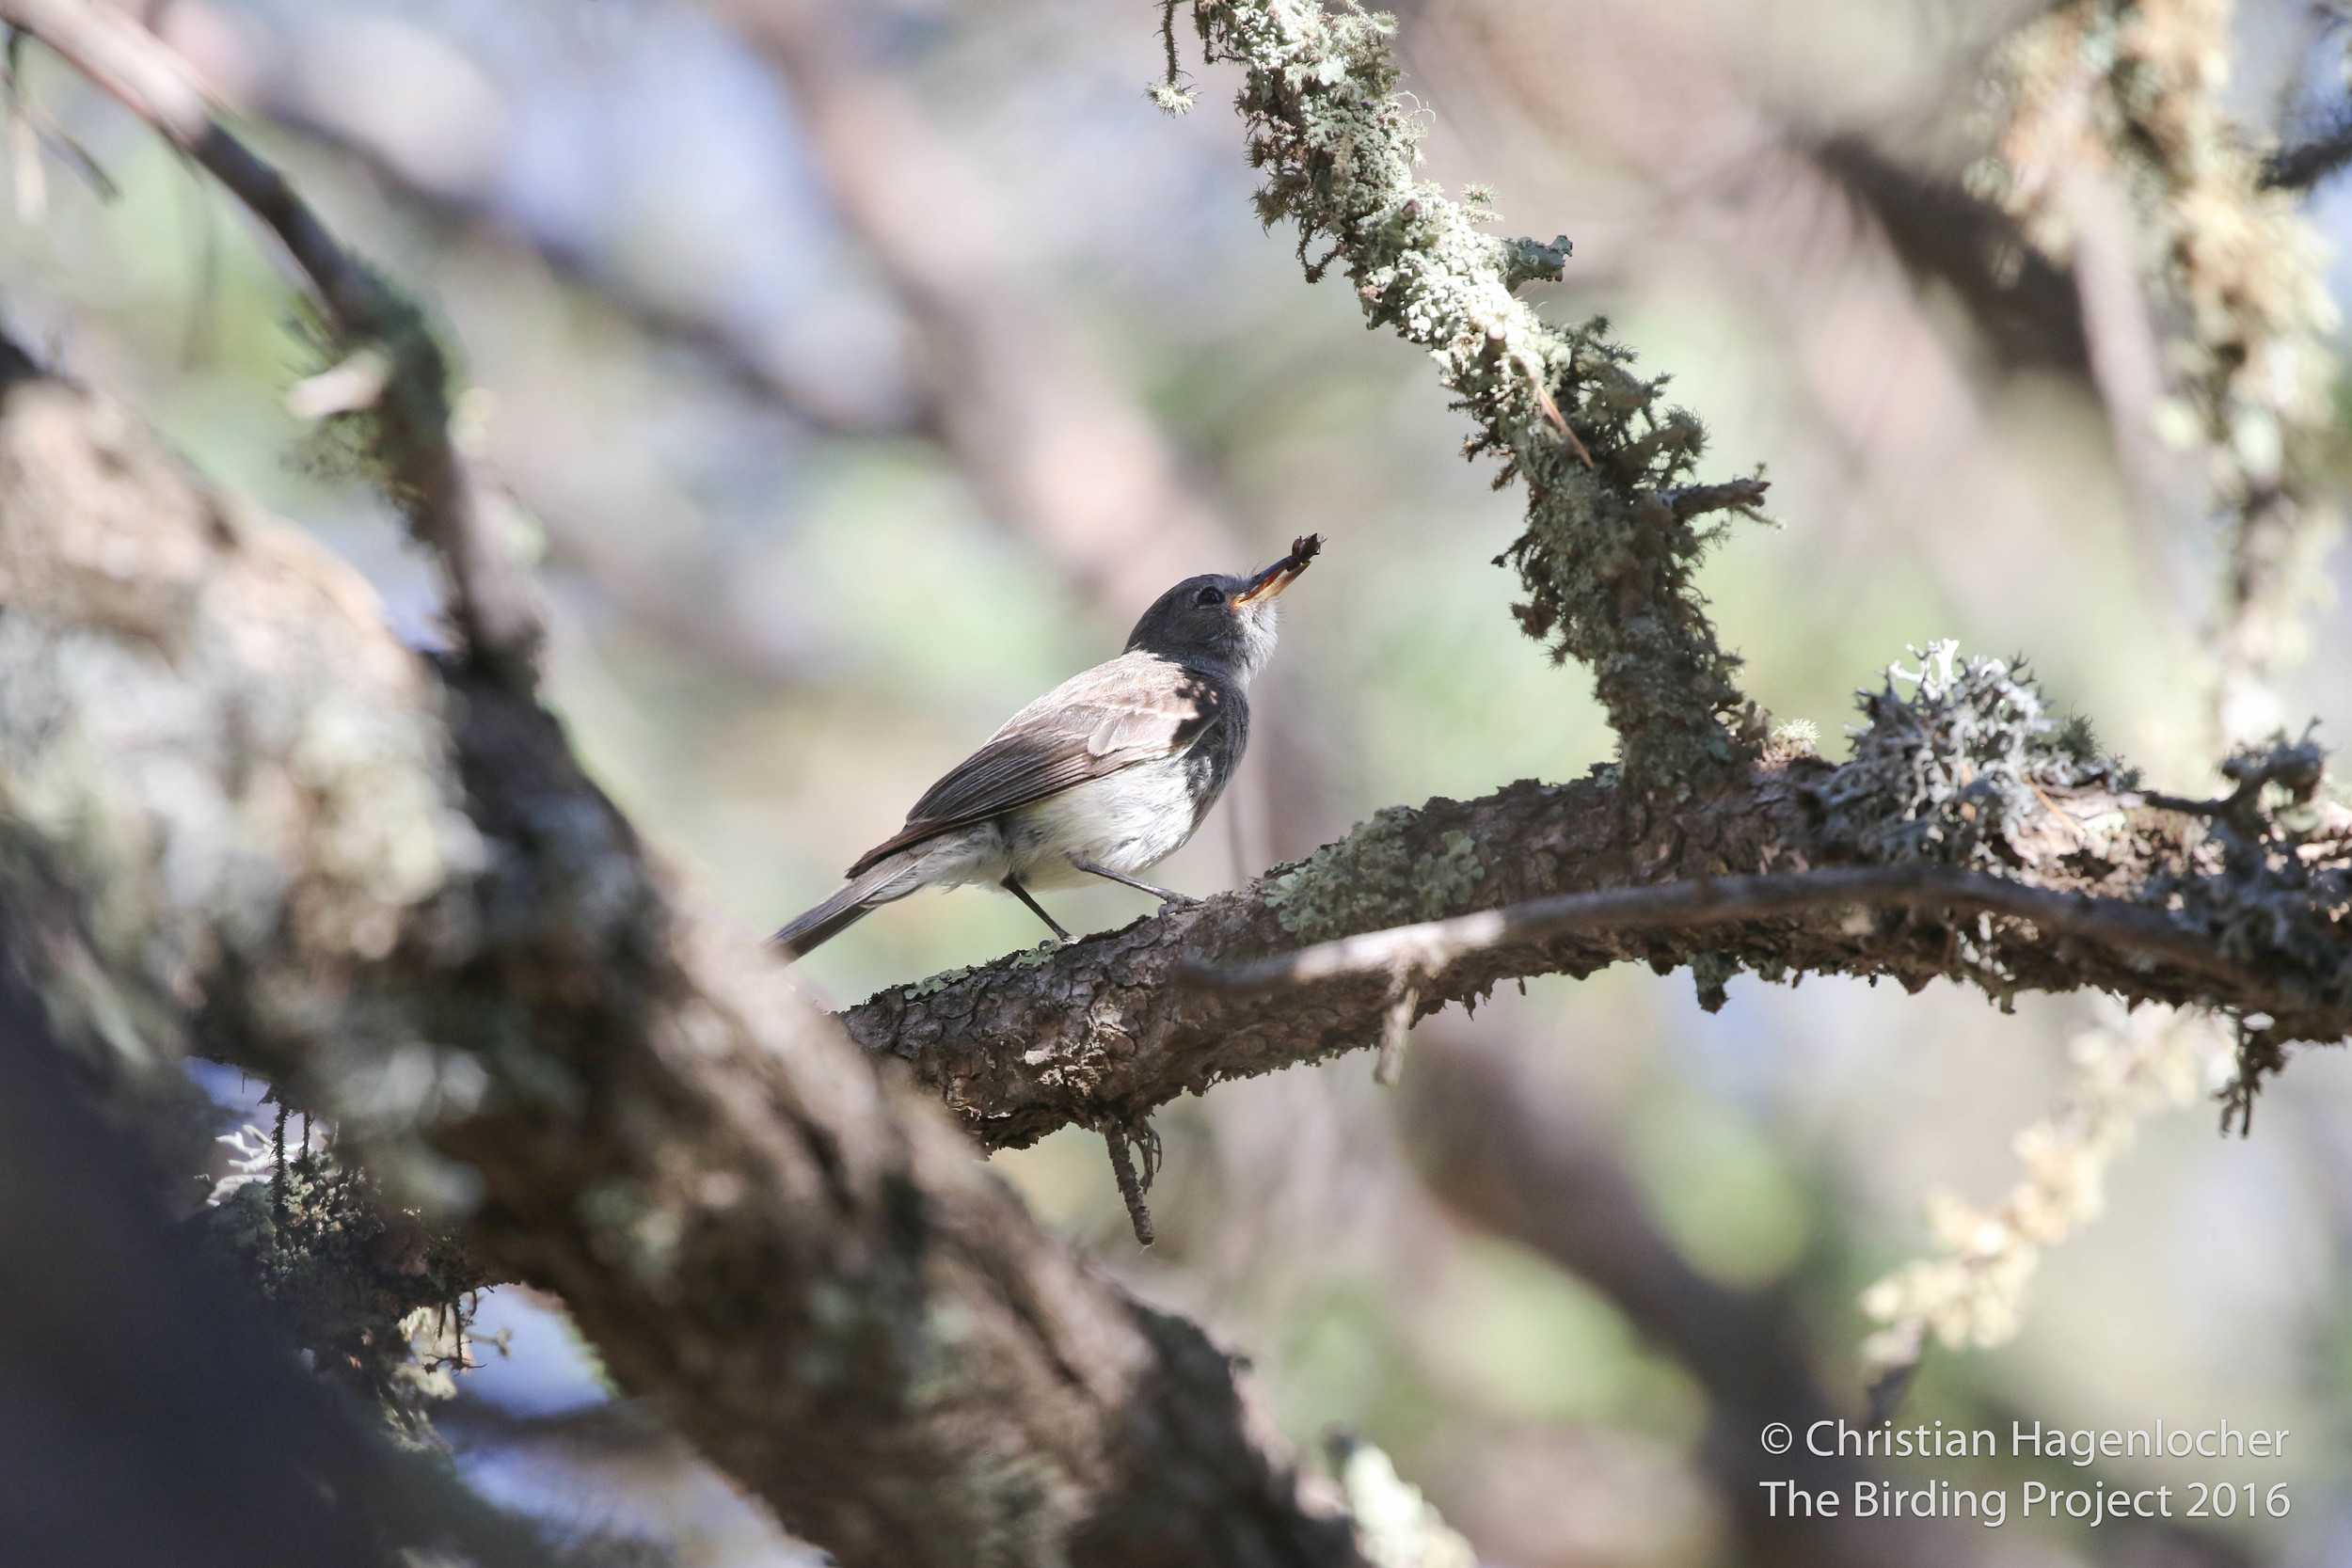 A hatch-year Gray Flycatcher was the awesome bird of the morning, adding one to the count for my year list.